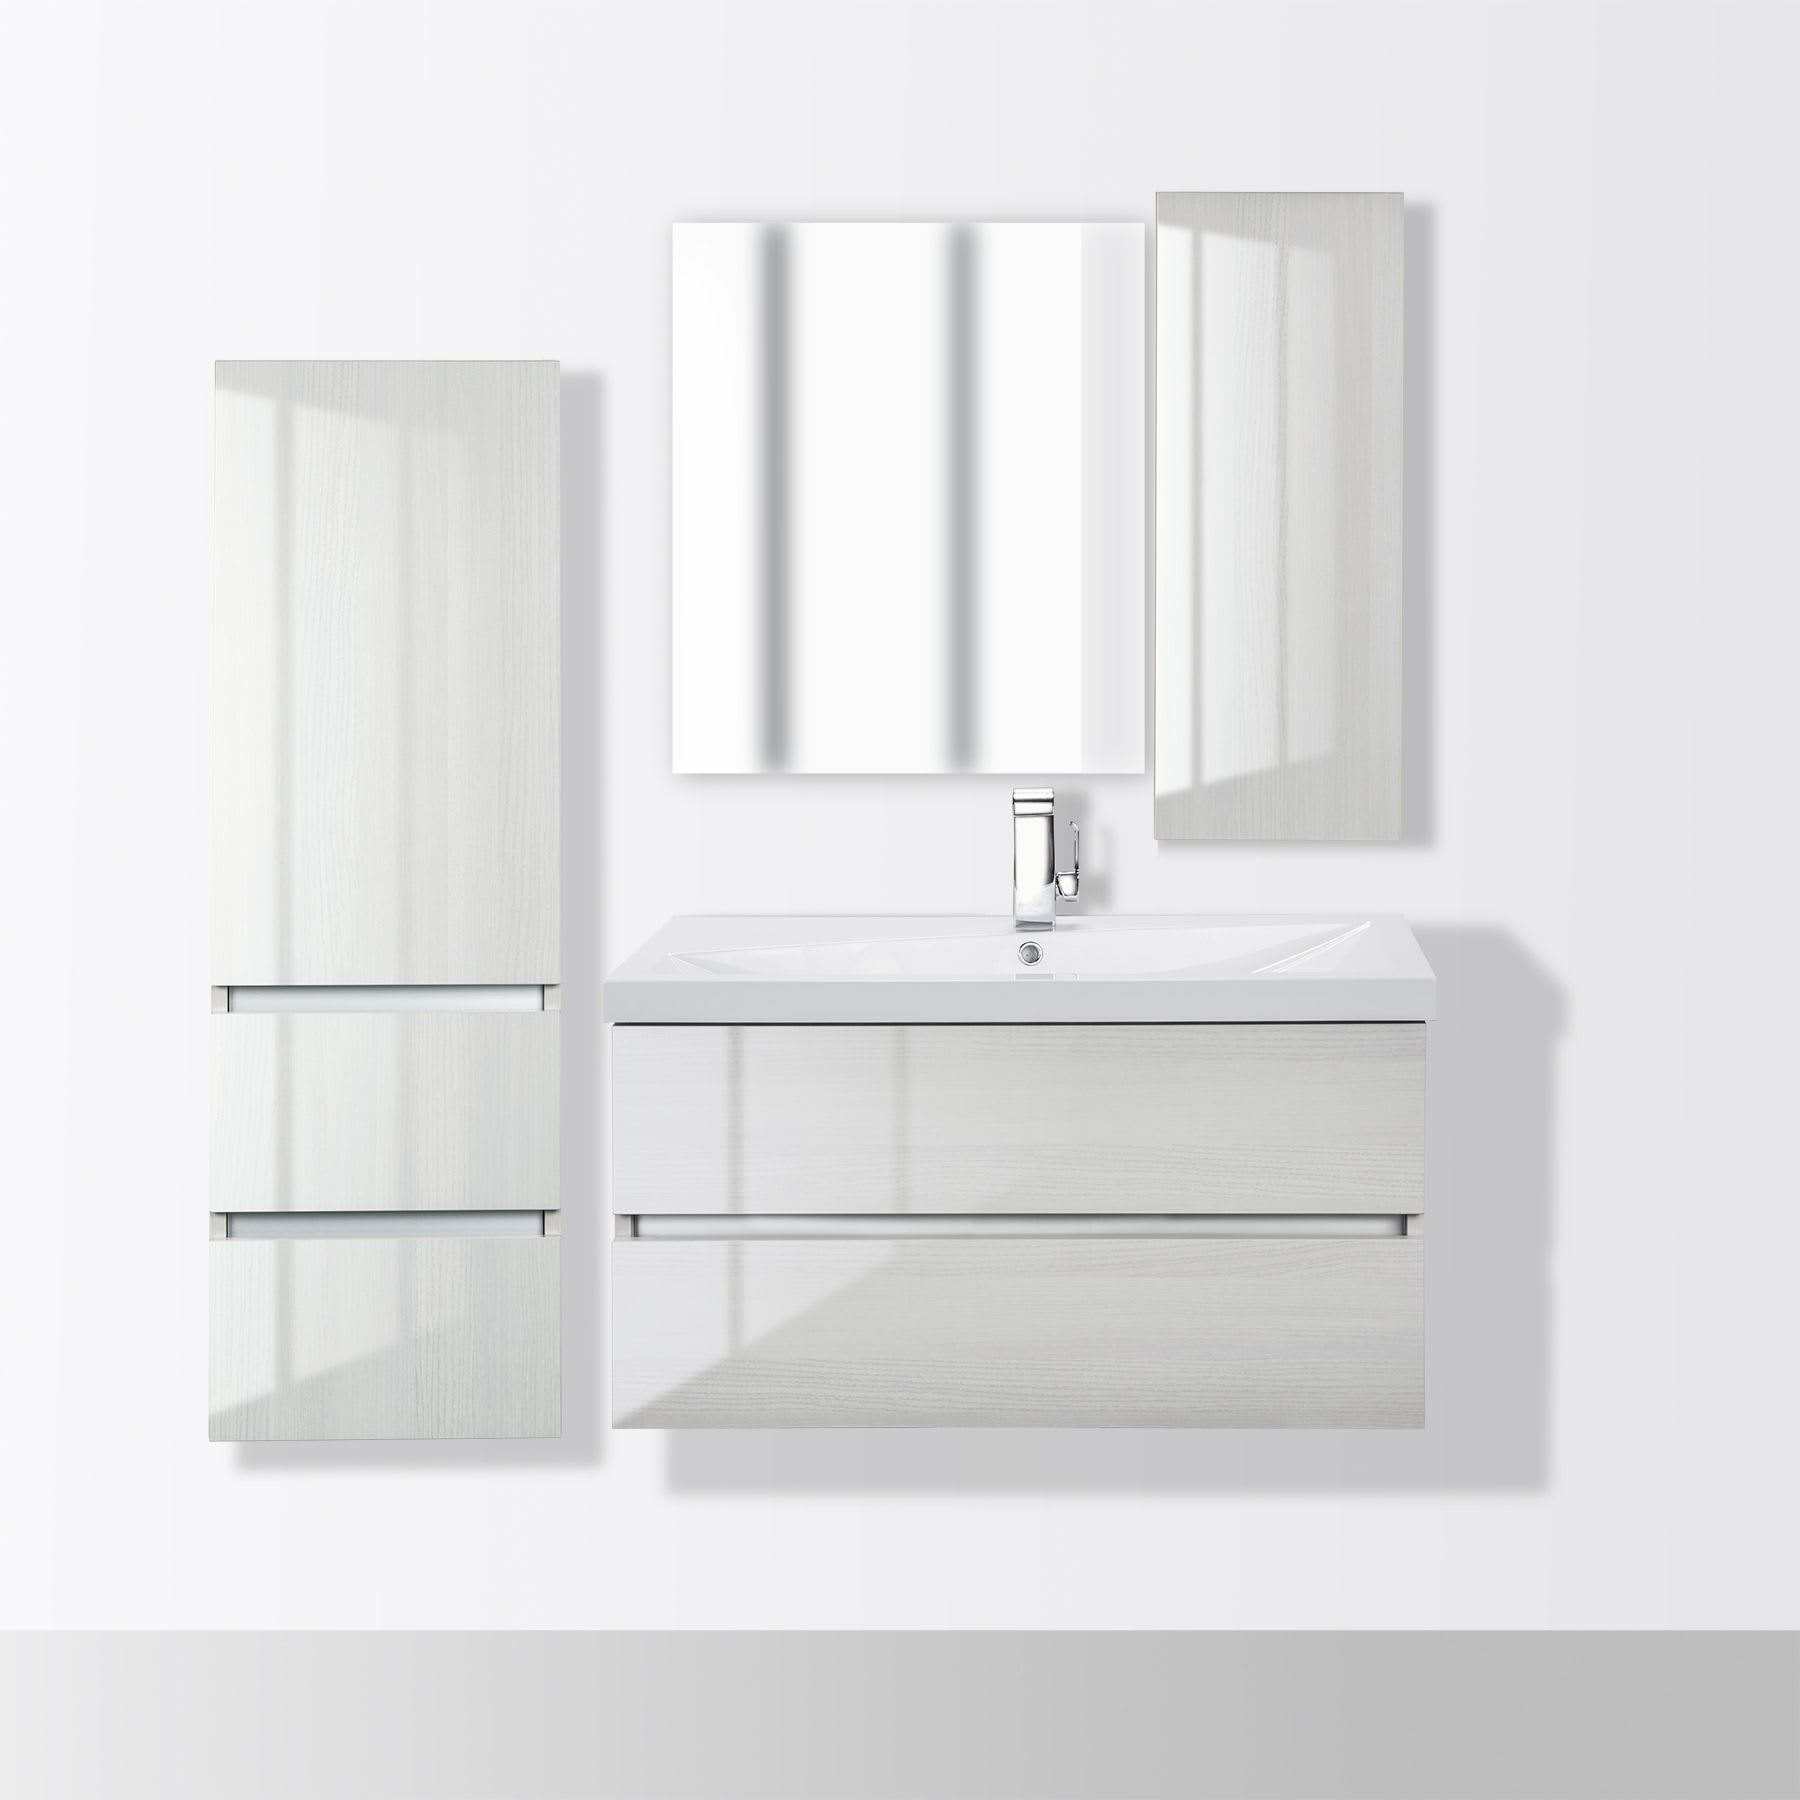 swing alternate com and gloss bath x fossil medicine reversible sangallo door kitchen cabinet lifestyle cutler single oak with image faucet